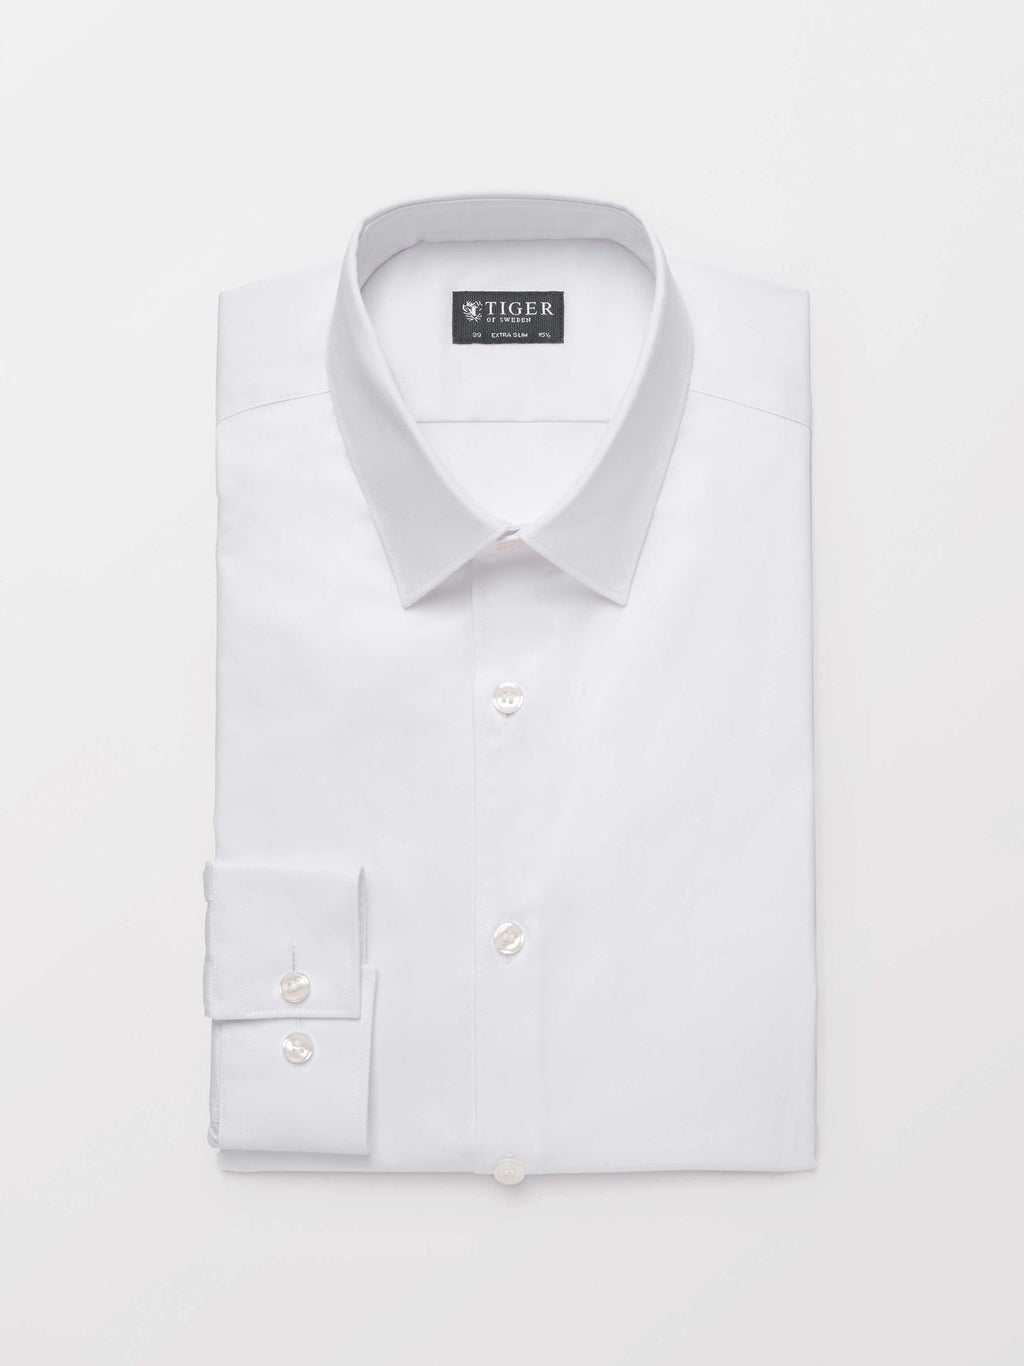 White shirt for men classical summer 2019